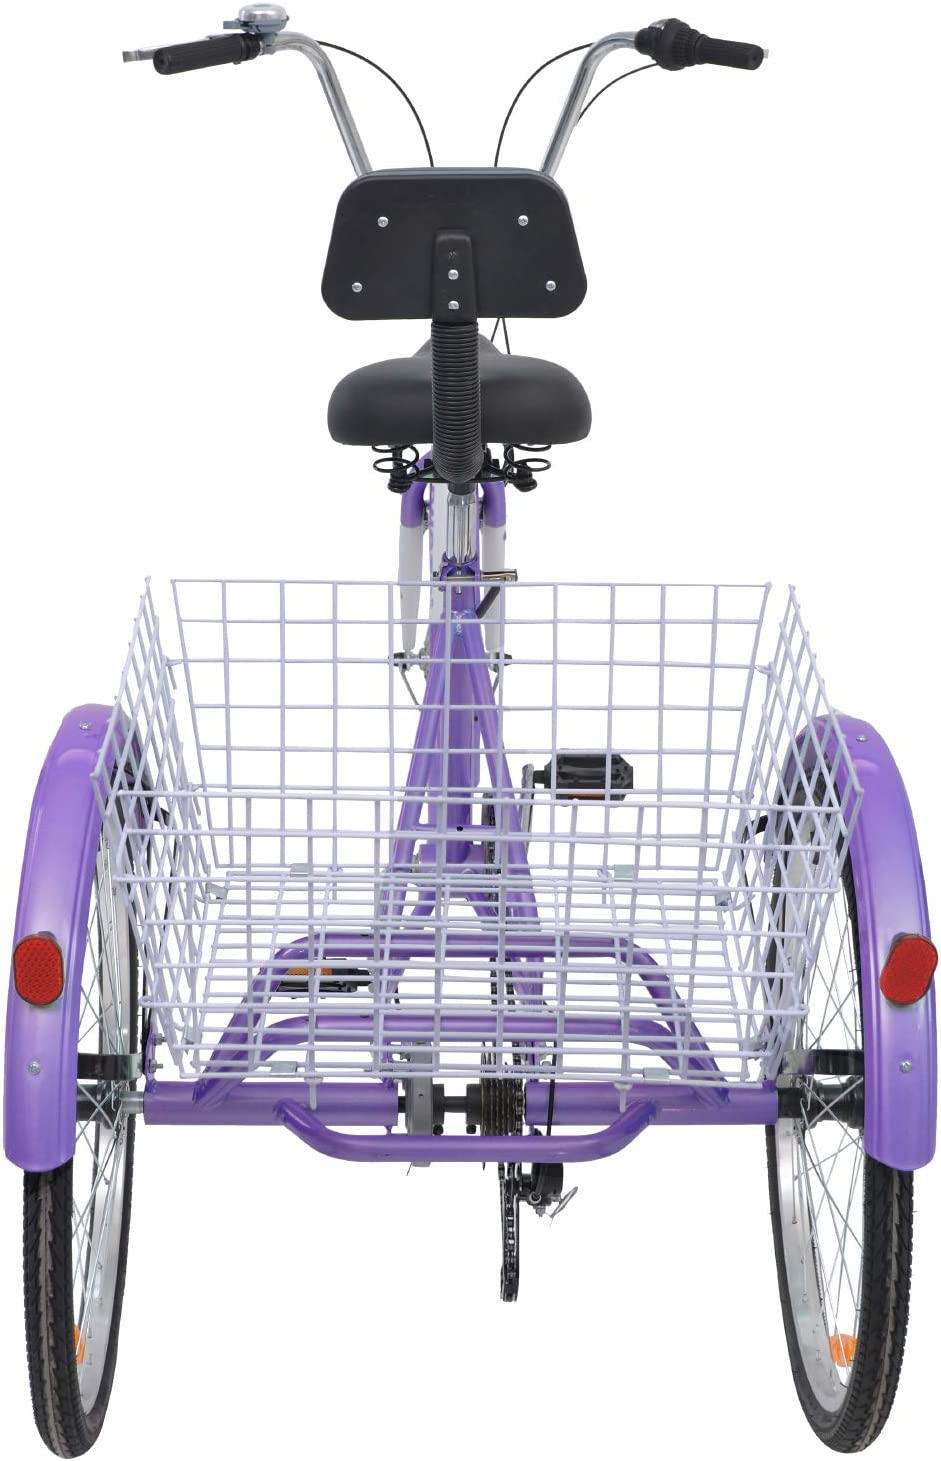 H/&ZT Tricycle 1-Speed Trike Cruiser Bike 3 Wheeled Bicycle w//Large Basket and Maintenance Tools Childrens Teenagers Mens Womens Cruiser Bicycles